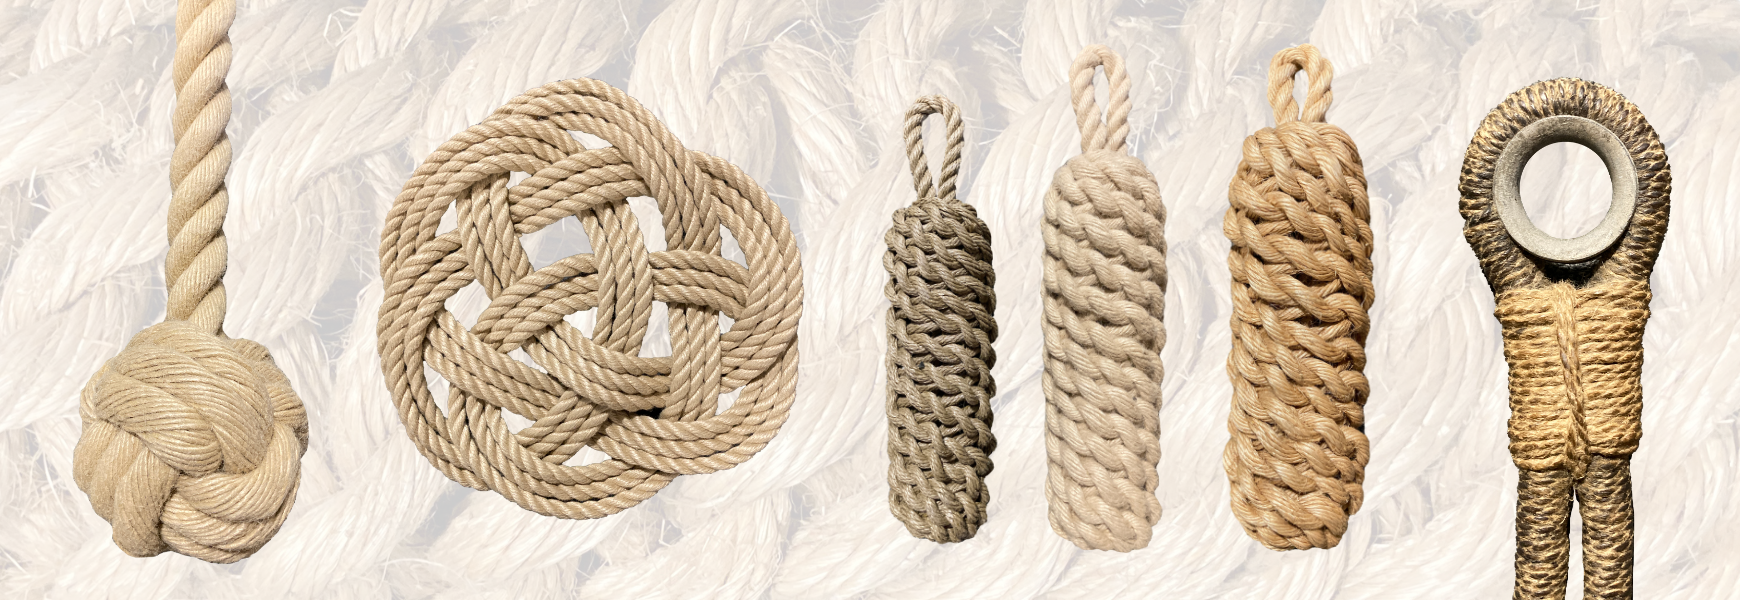 Knot tying rope